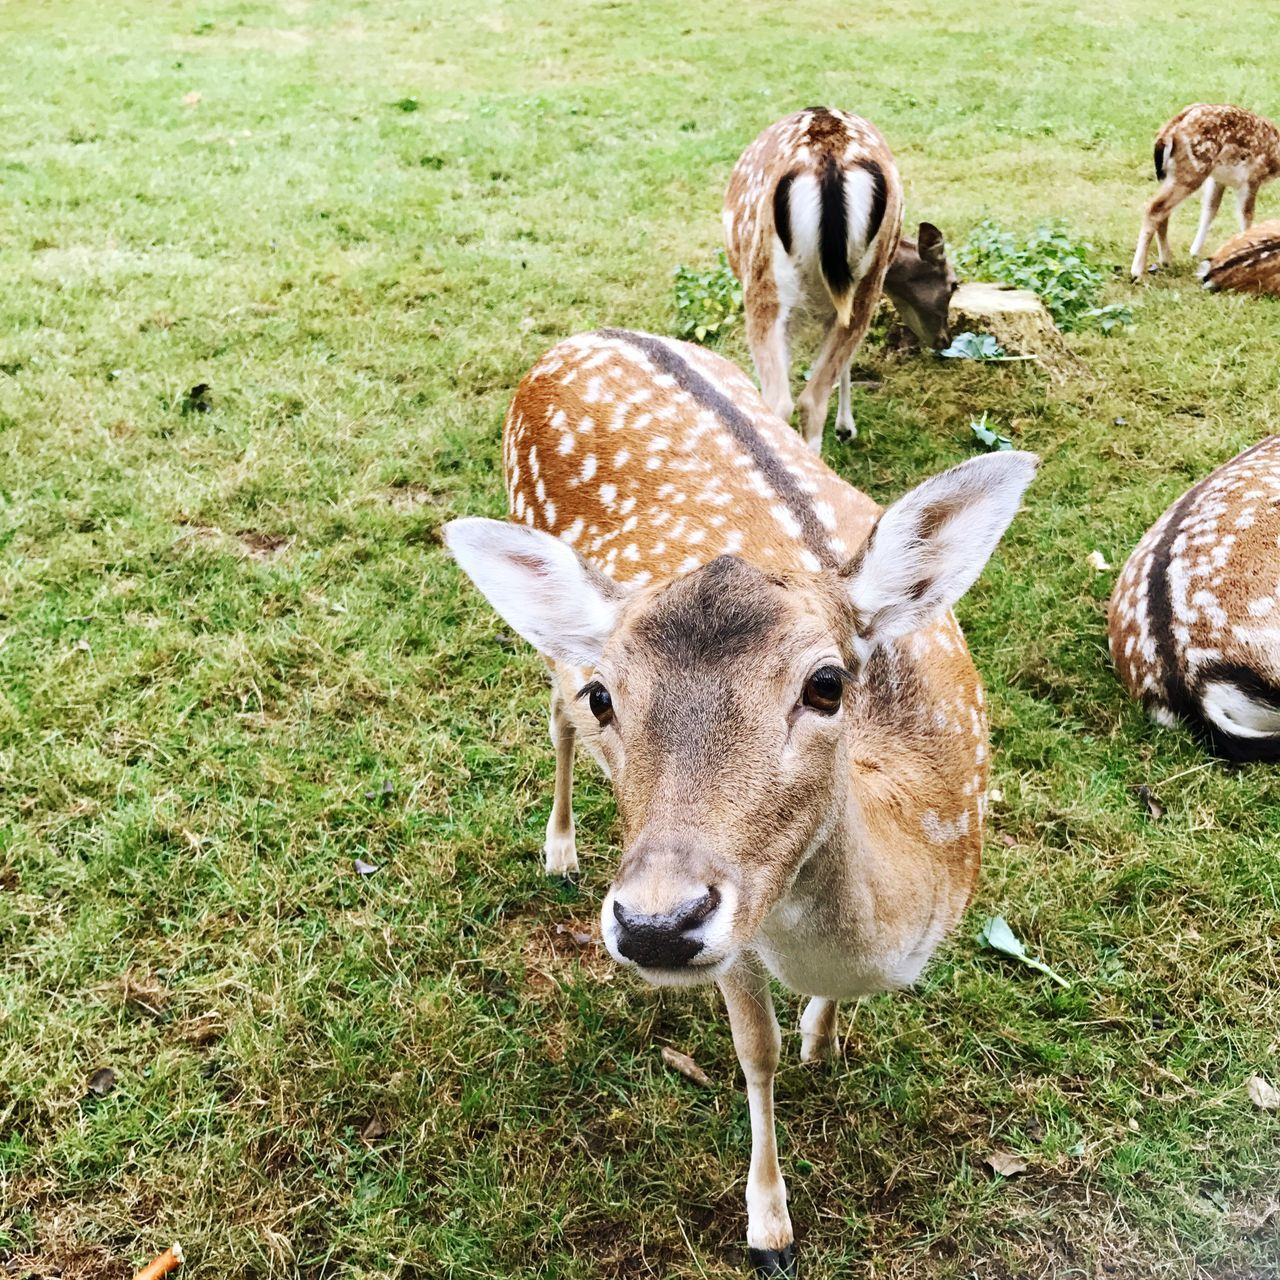 Deer Roe Deer Herd Animal Animals Grass Animal Themes Mammal Field Wildlife Animals In The Wild Looking At Camera Herbivorous Grassy Green Color Medium Group Of Animals Meadow Nature Fawn Livestock Day Outdoors Animal Head  Zoology Focus On Foreground